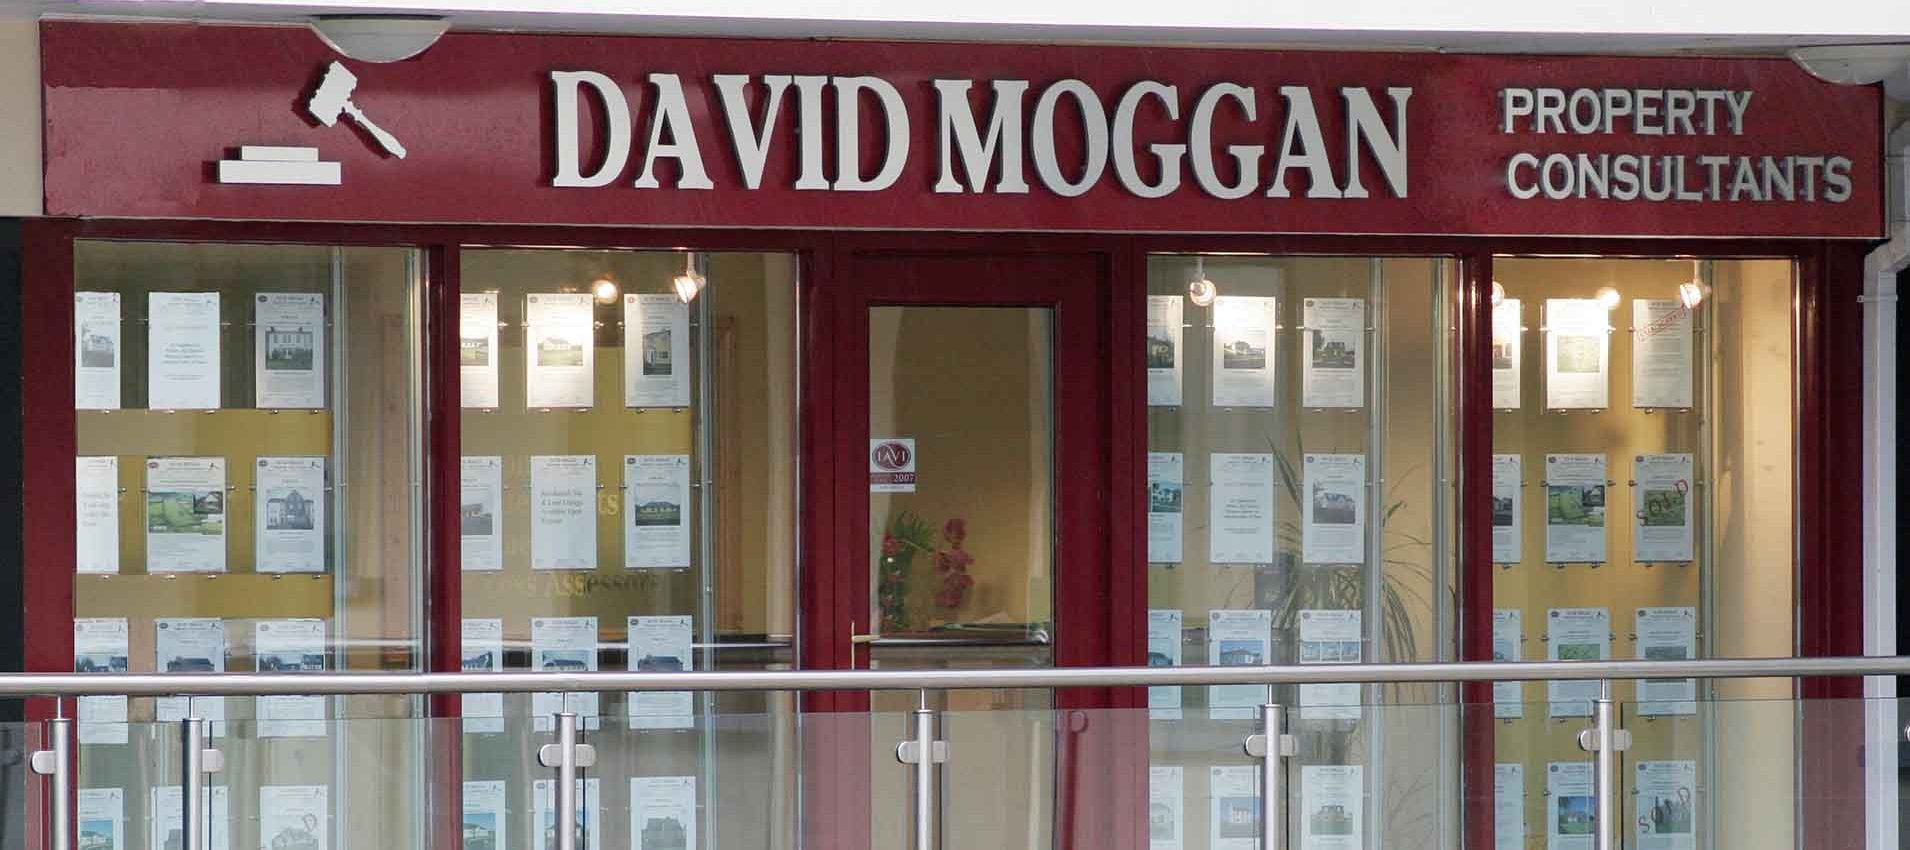 David Moggan Property Consultant Galway